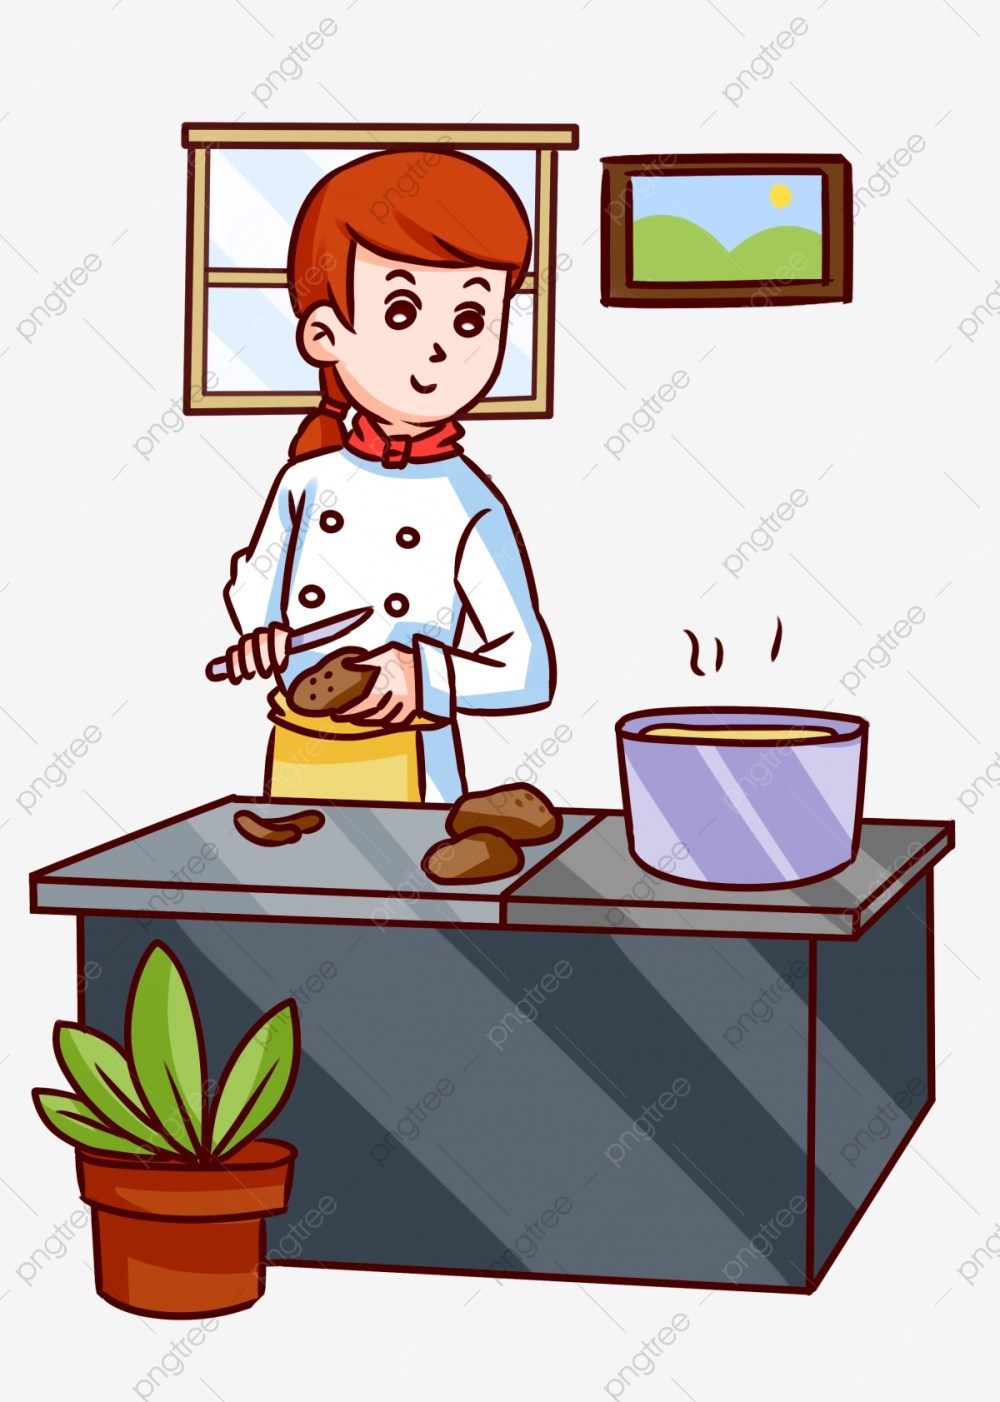 medium resolution of commercial use resource upgrade to premium plan and get license authorization upgradenow happy cooking cooking clipart